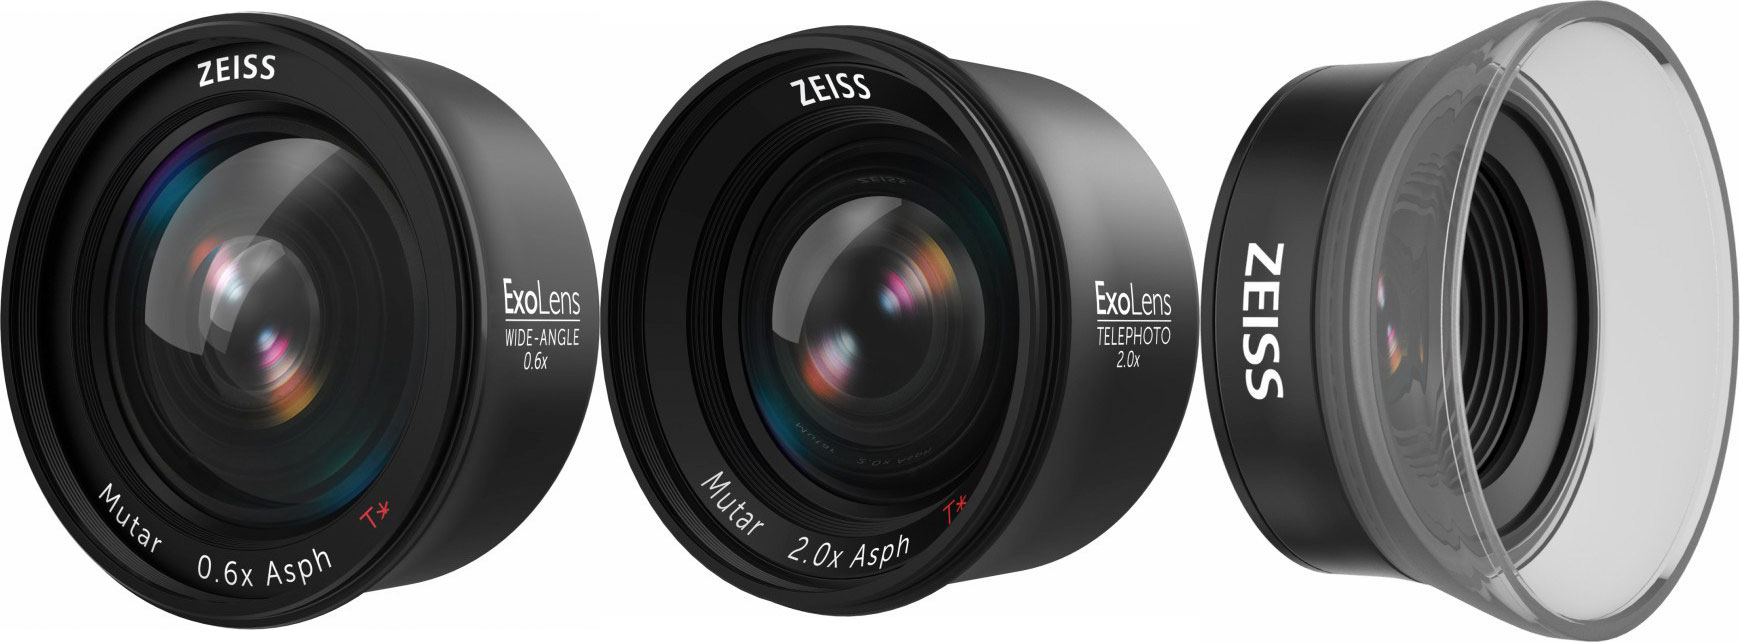 Exolens Puts Zeiss Lenses on Your iPhone Camera